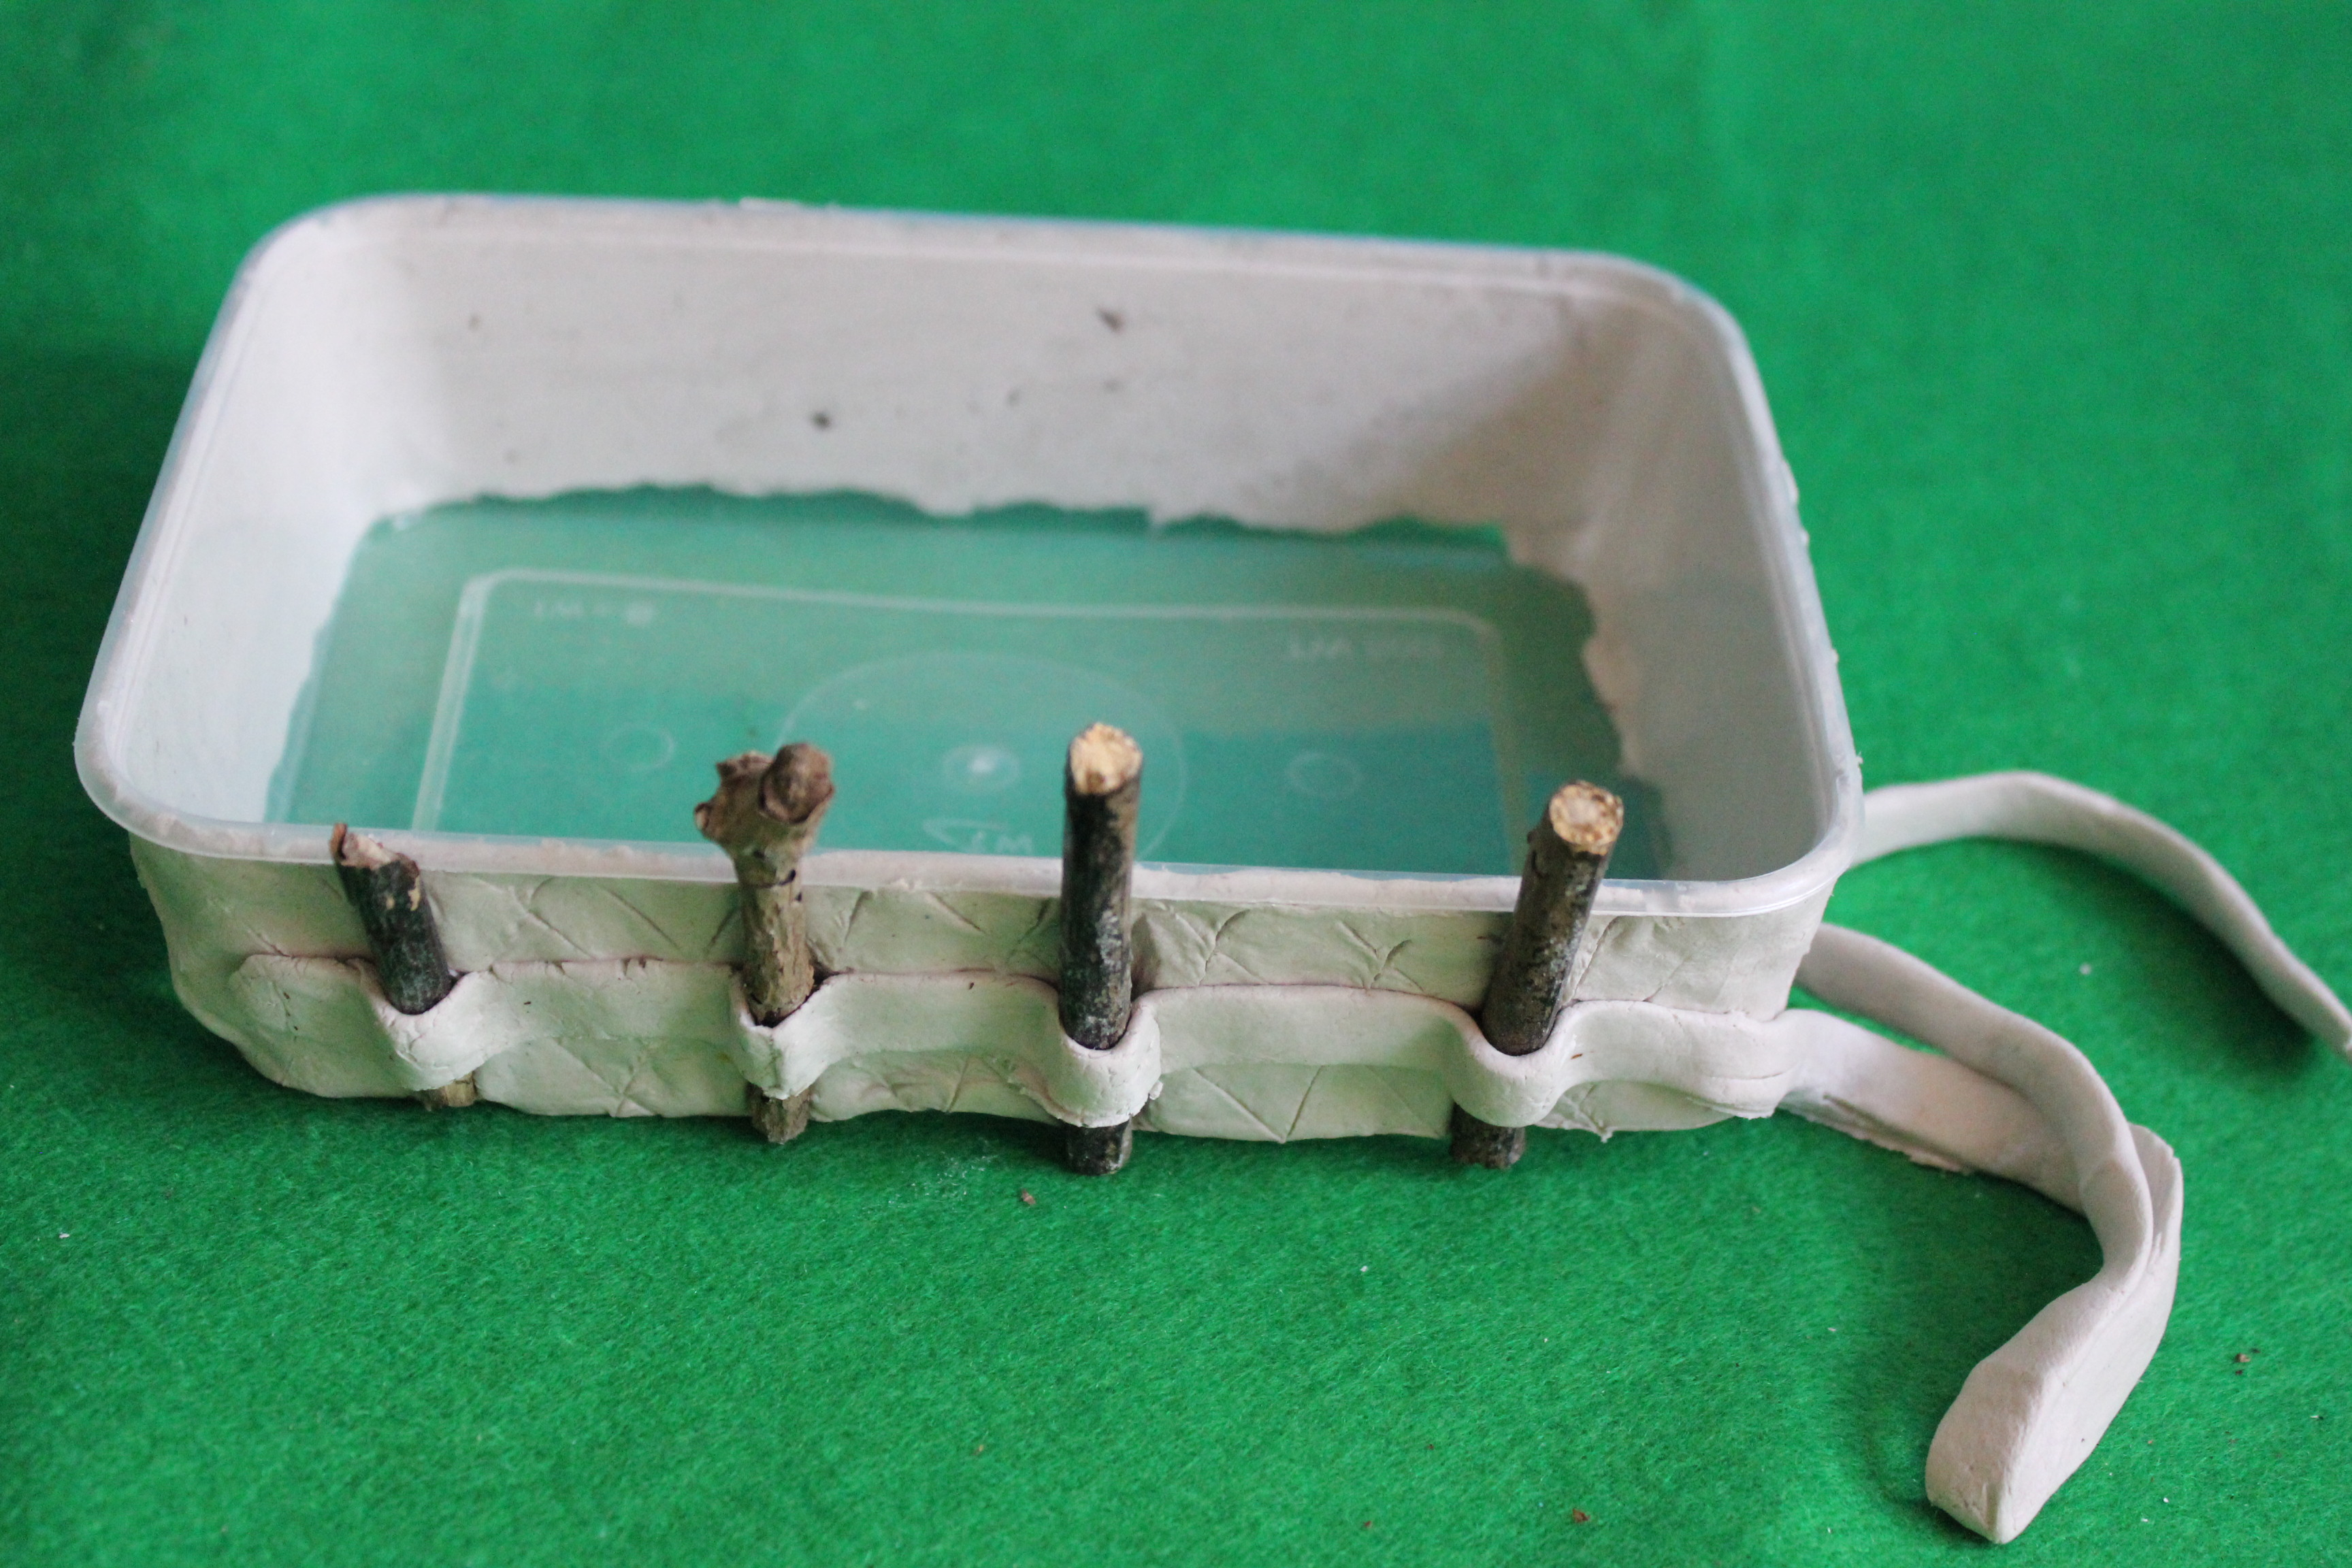 Wrap the clay over the twigs, around the box. Make sure to press very firmly to make the clay and twigs stick together properly. The clay will dry solid within 2 days.